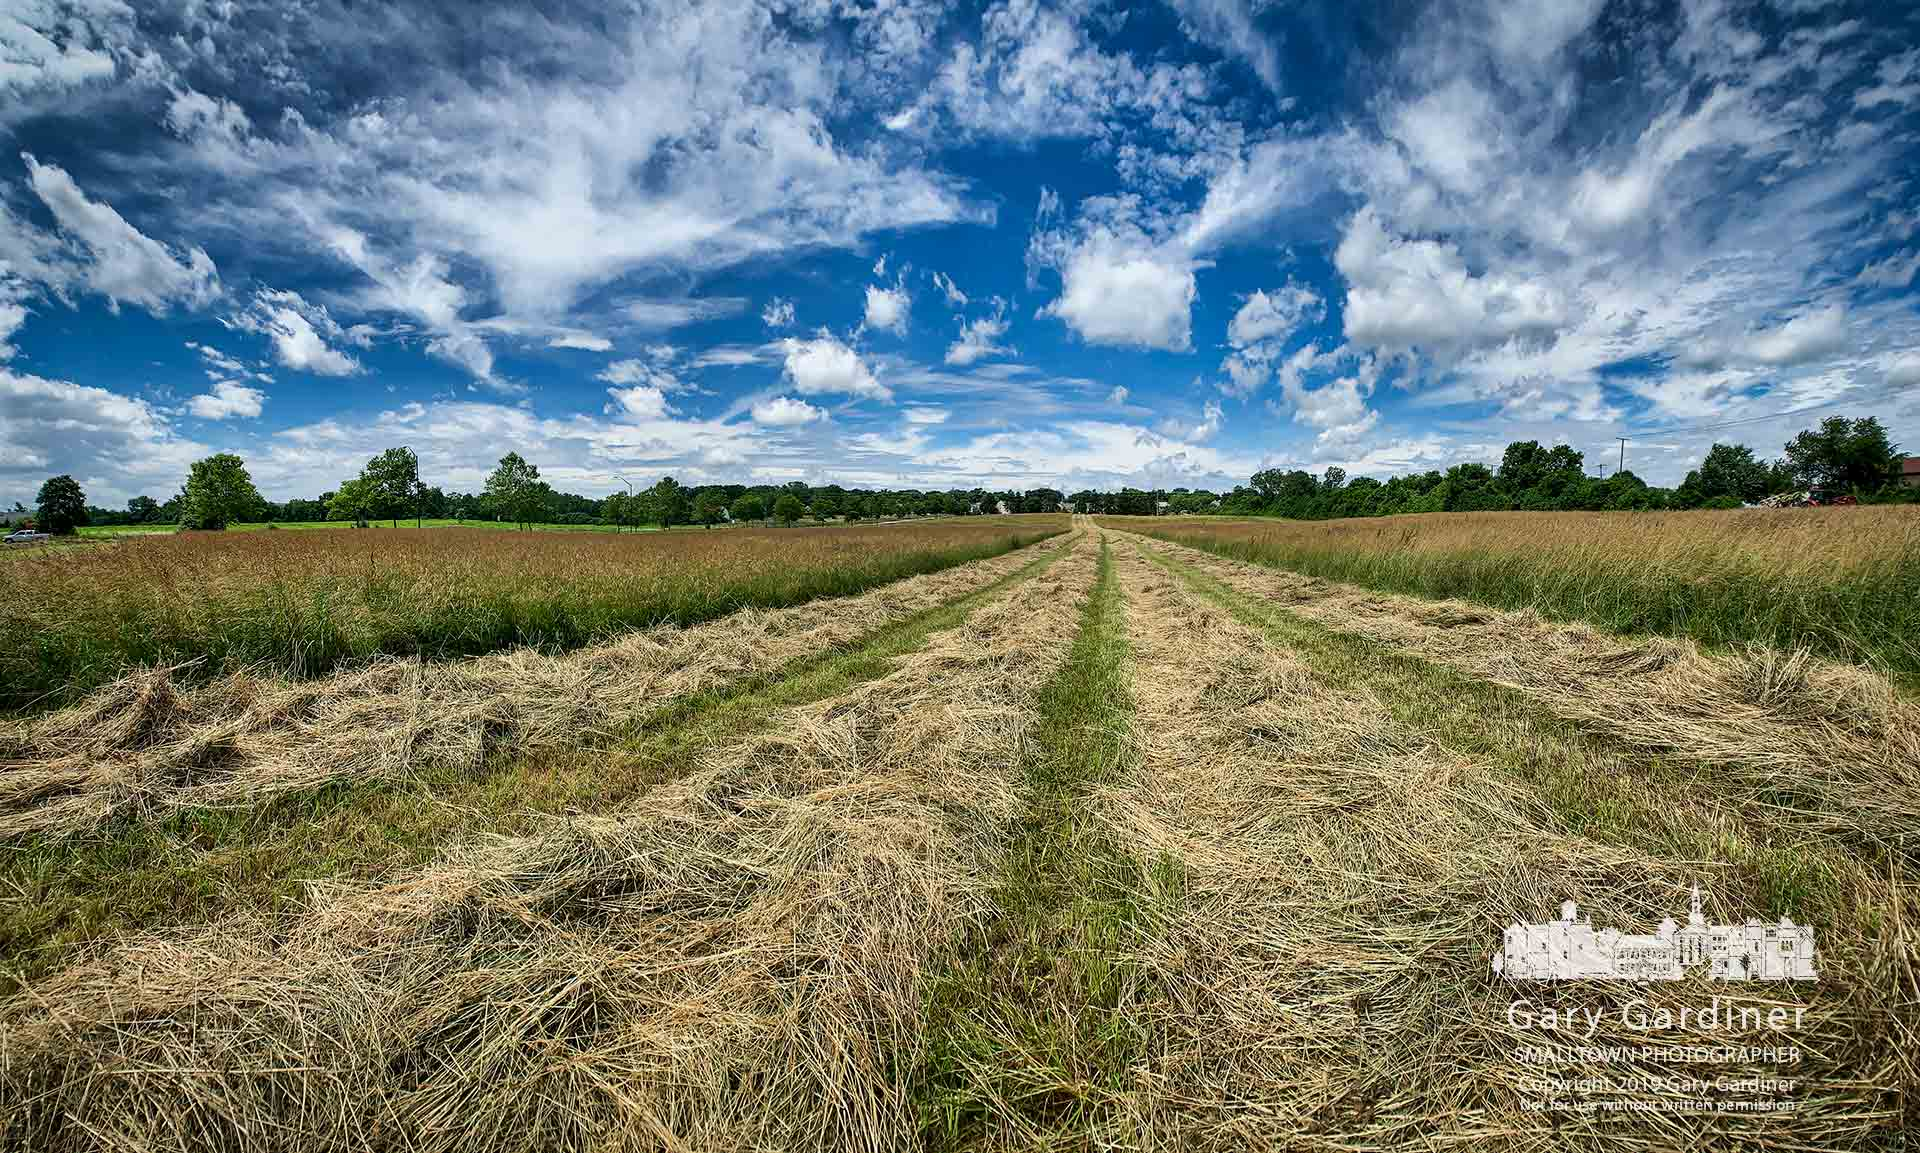 Clouds in a blue summer sky hang over four rows of hay drying in a section of the Otterbein fields along Cooper Road. My Final Photo for June 24, 2019.